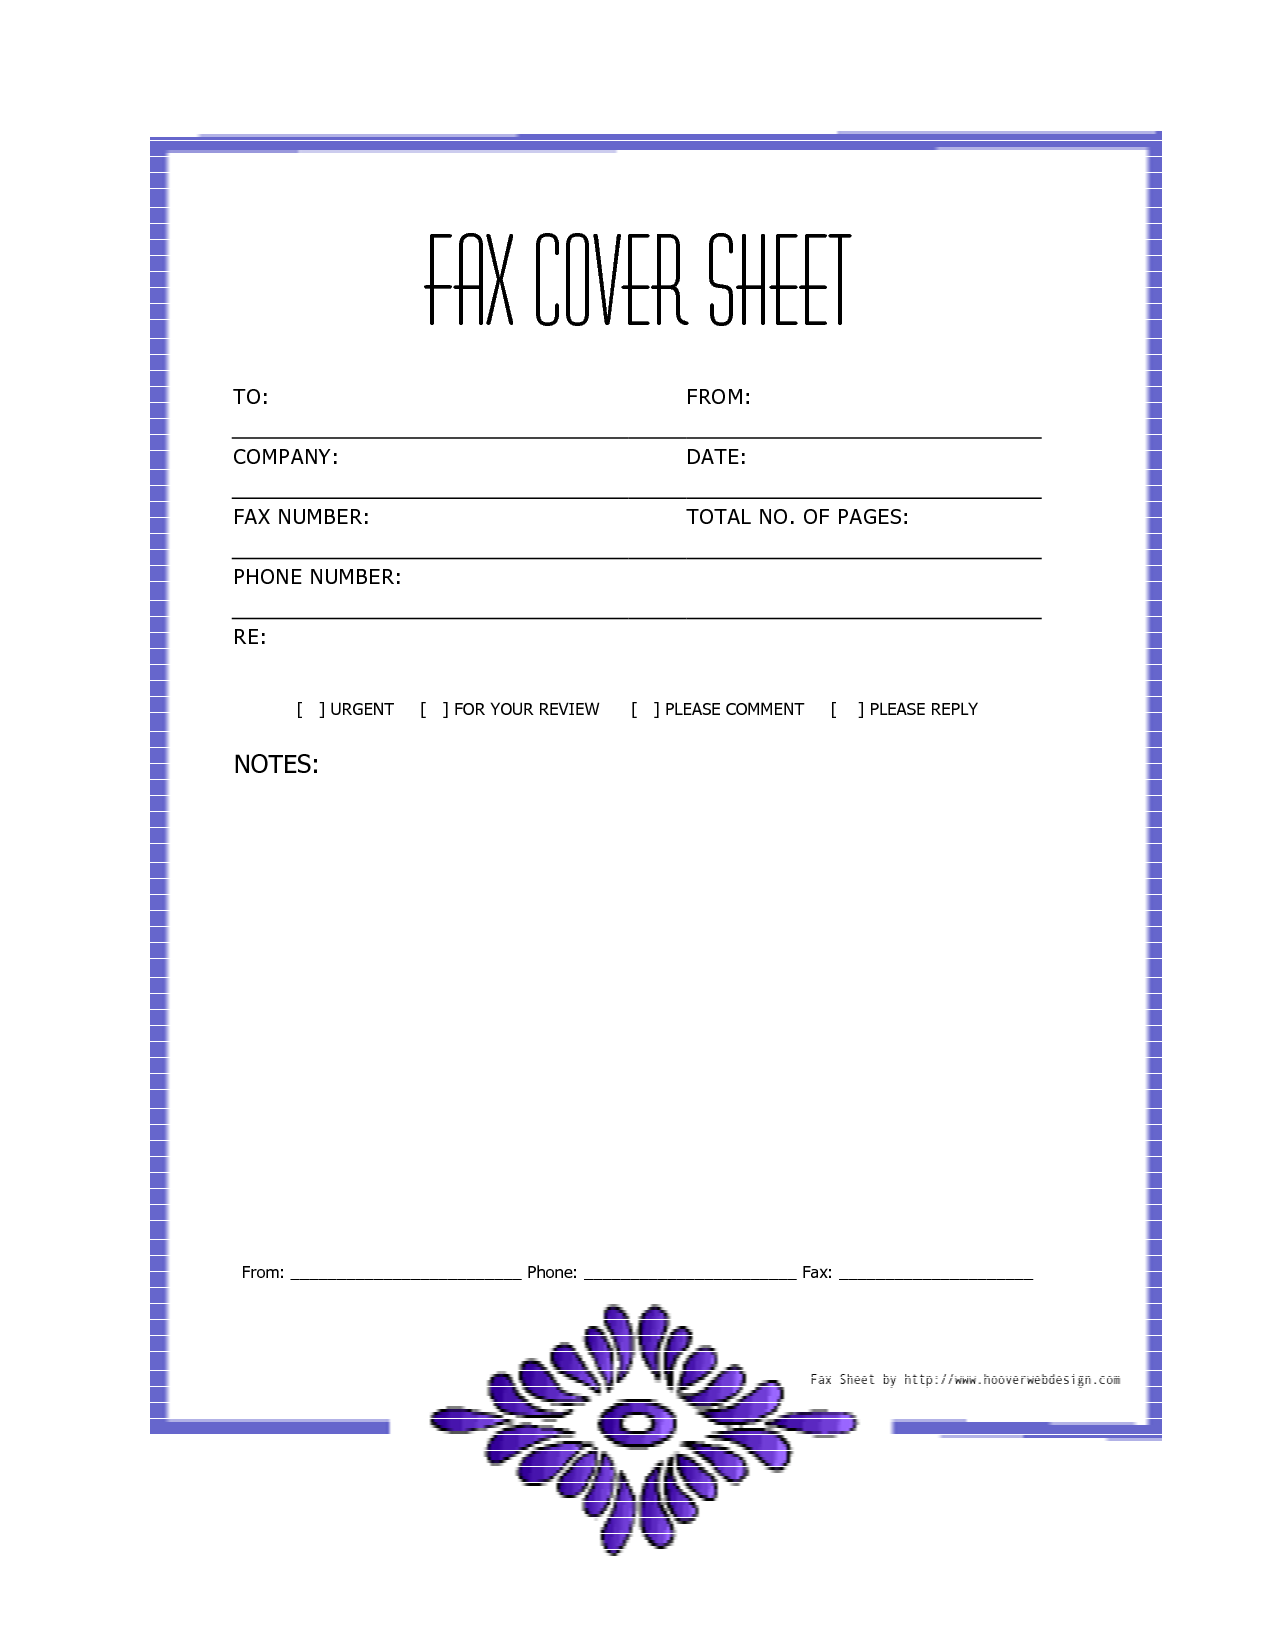 Free Downloads Fax Covers Sheets – Sample Blank Fax Cover Sheet